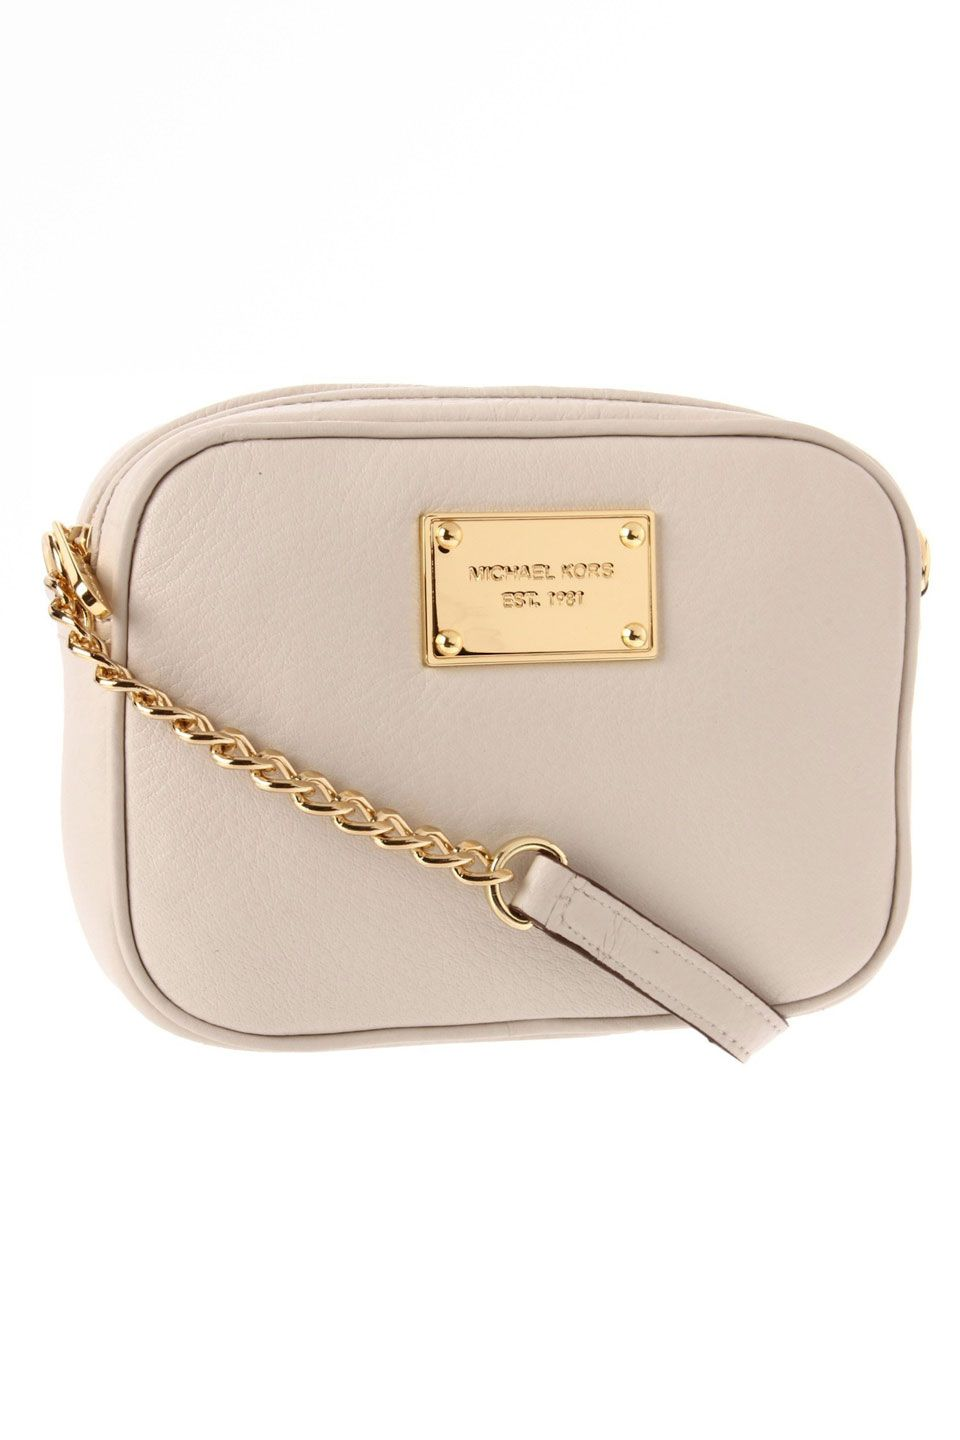 Off white and gold Michael Kors crossbody bag. 8d203c0f41564